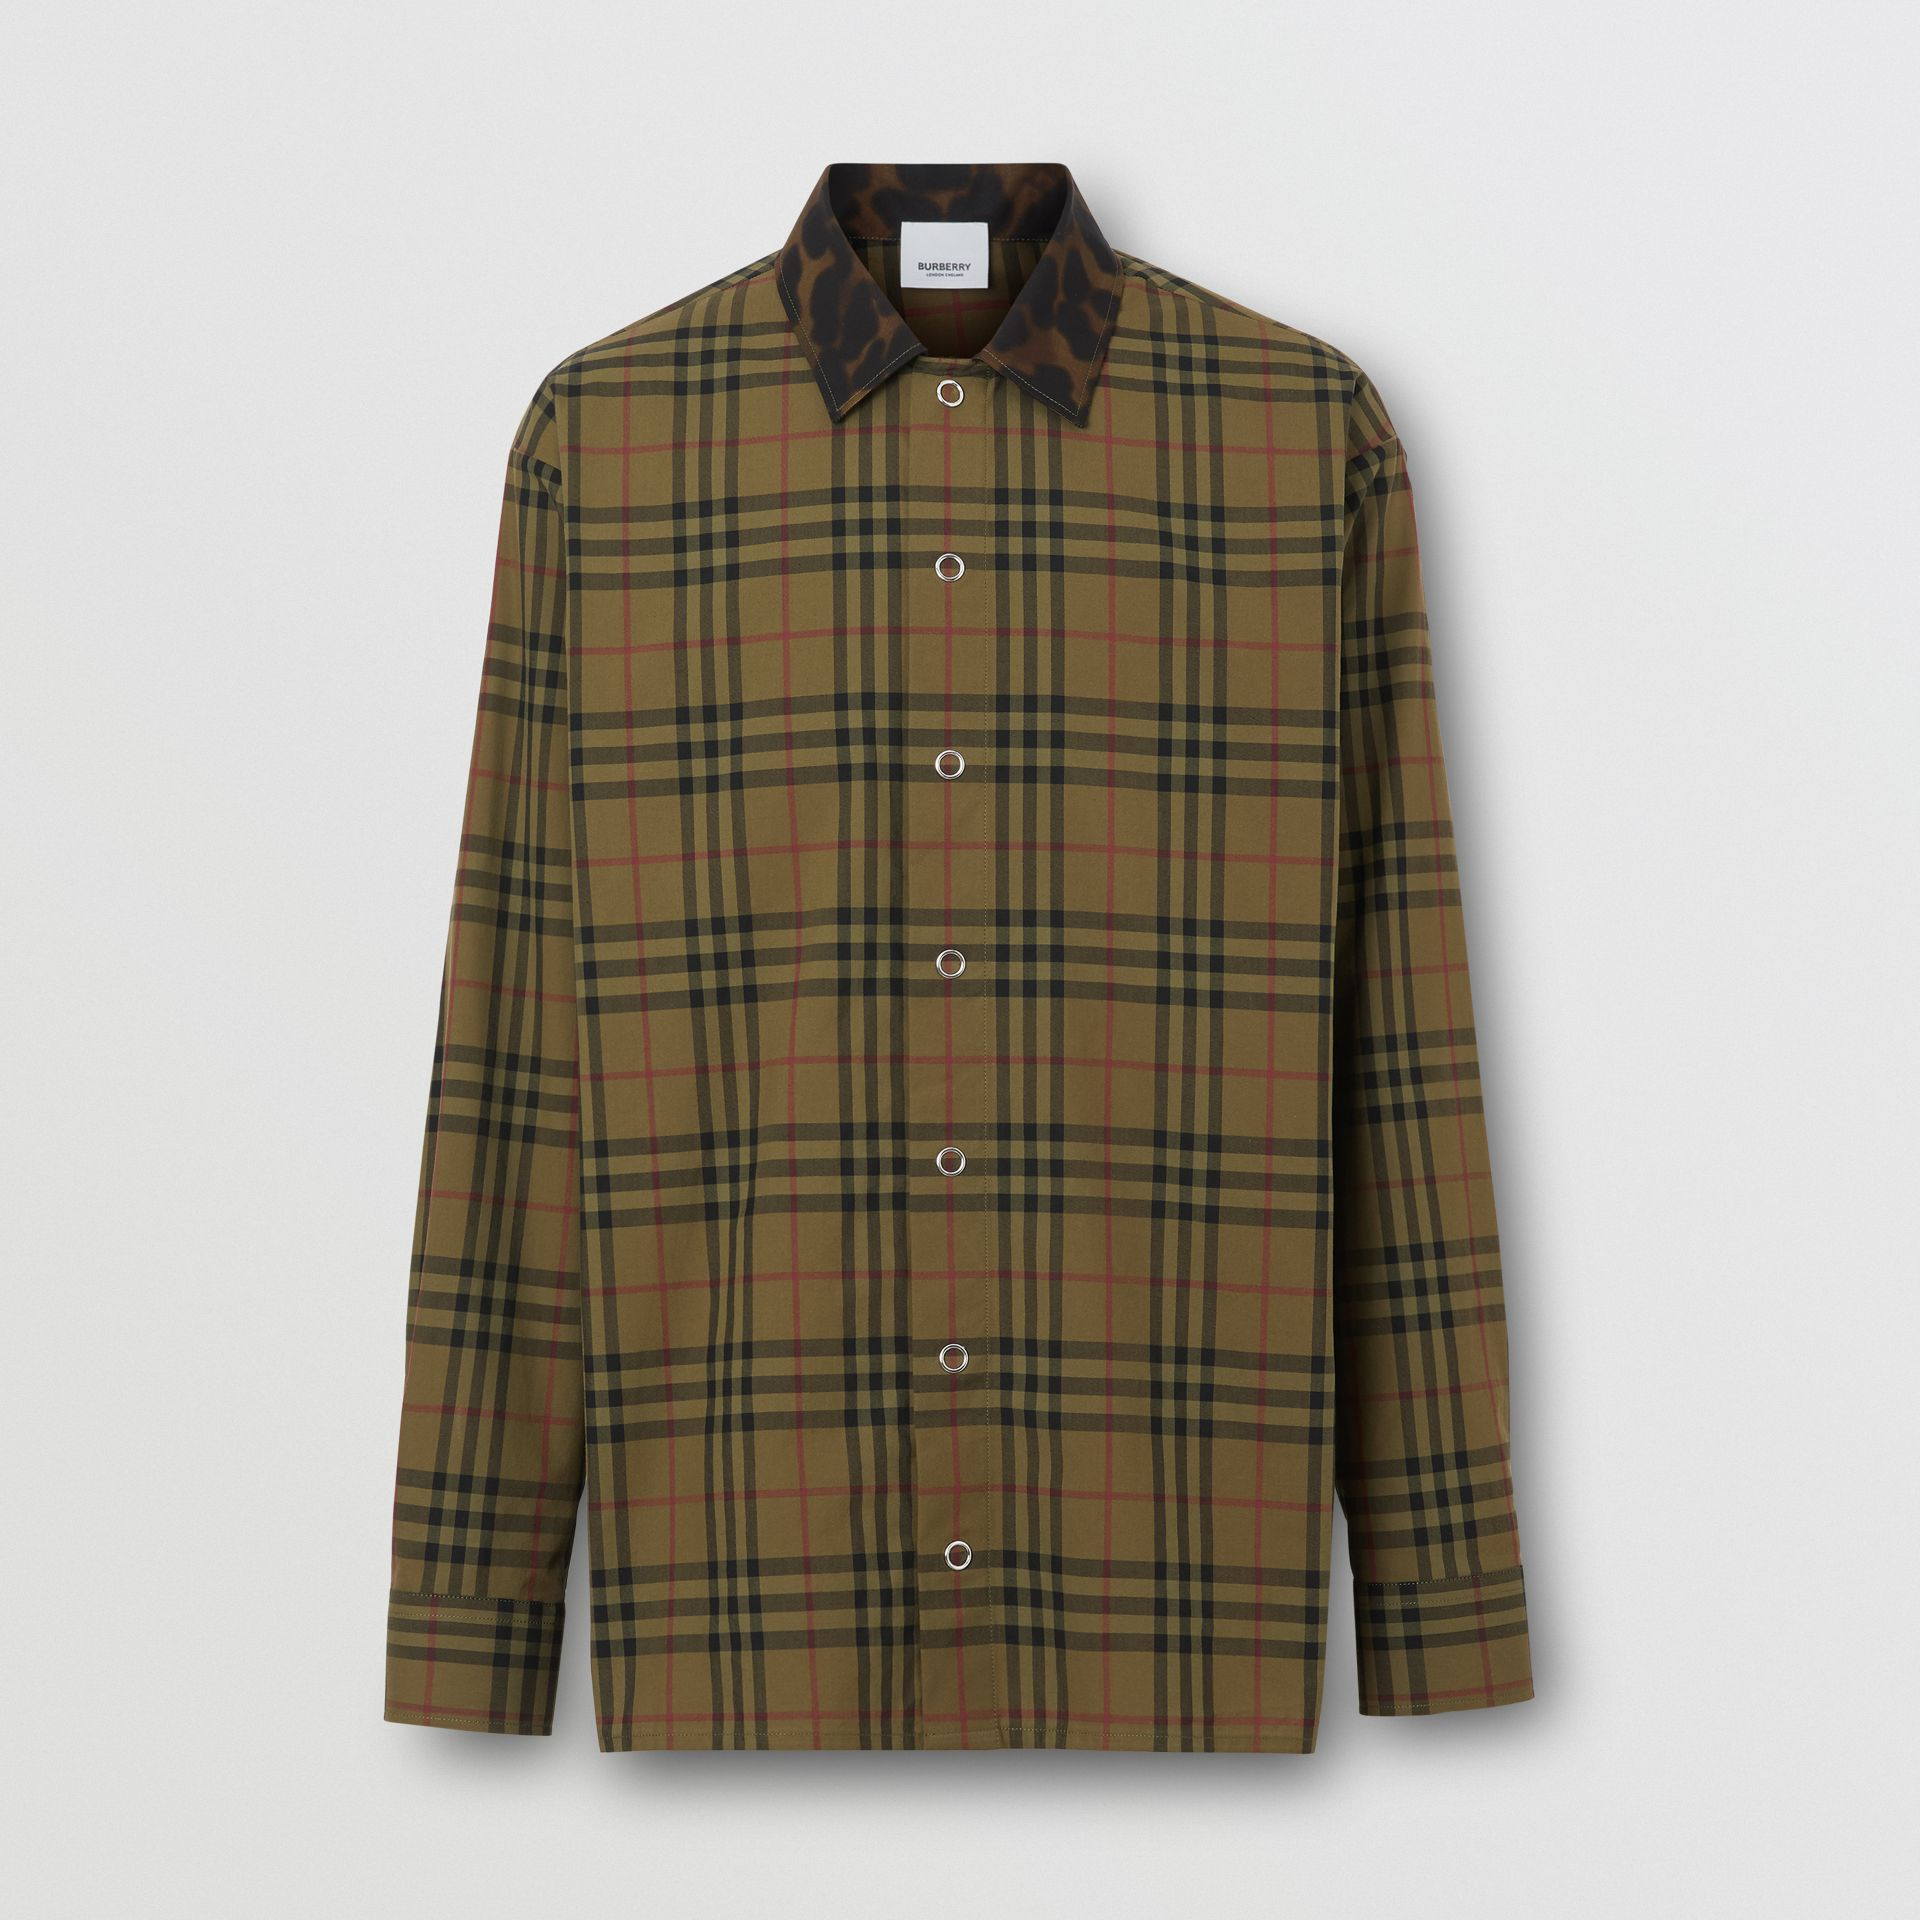 Contrast Collar Vintage Check Cotton Shirt in Army Green | Burberry - gallery image 3